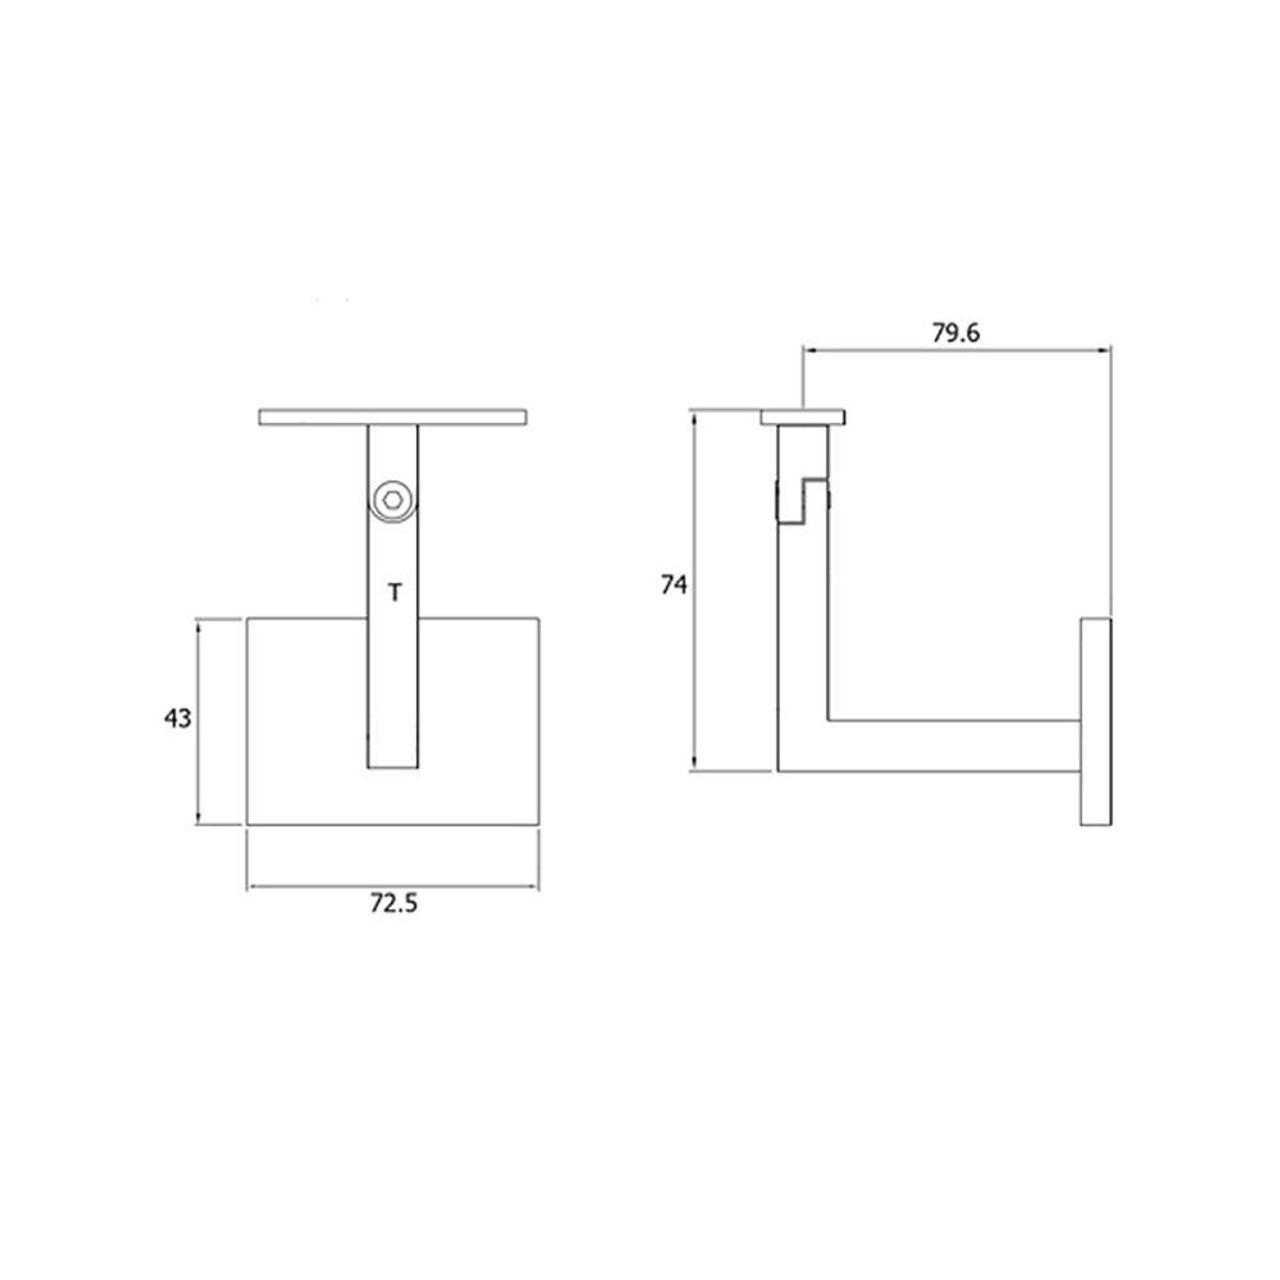 Adjustable Wall Handrail Support for Square or Flat Handrail 74 mm tall (AX20.005.033.A.SP) CADD